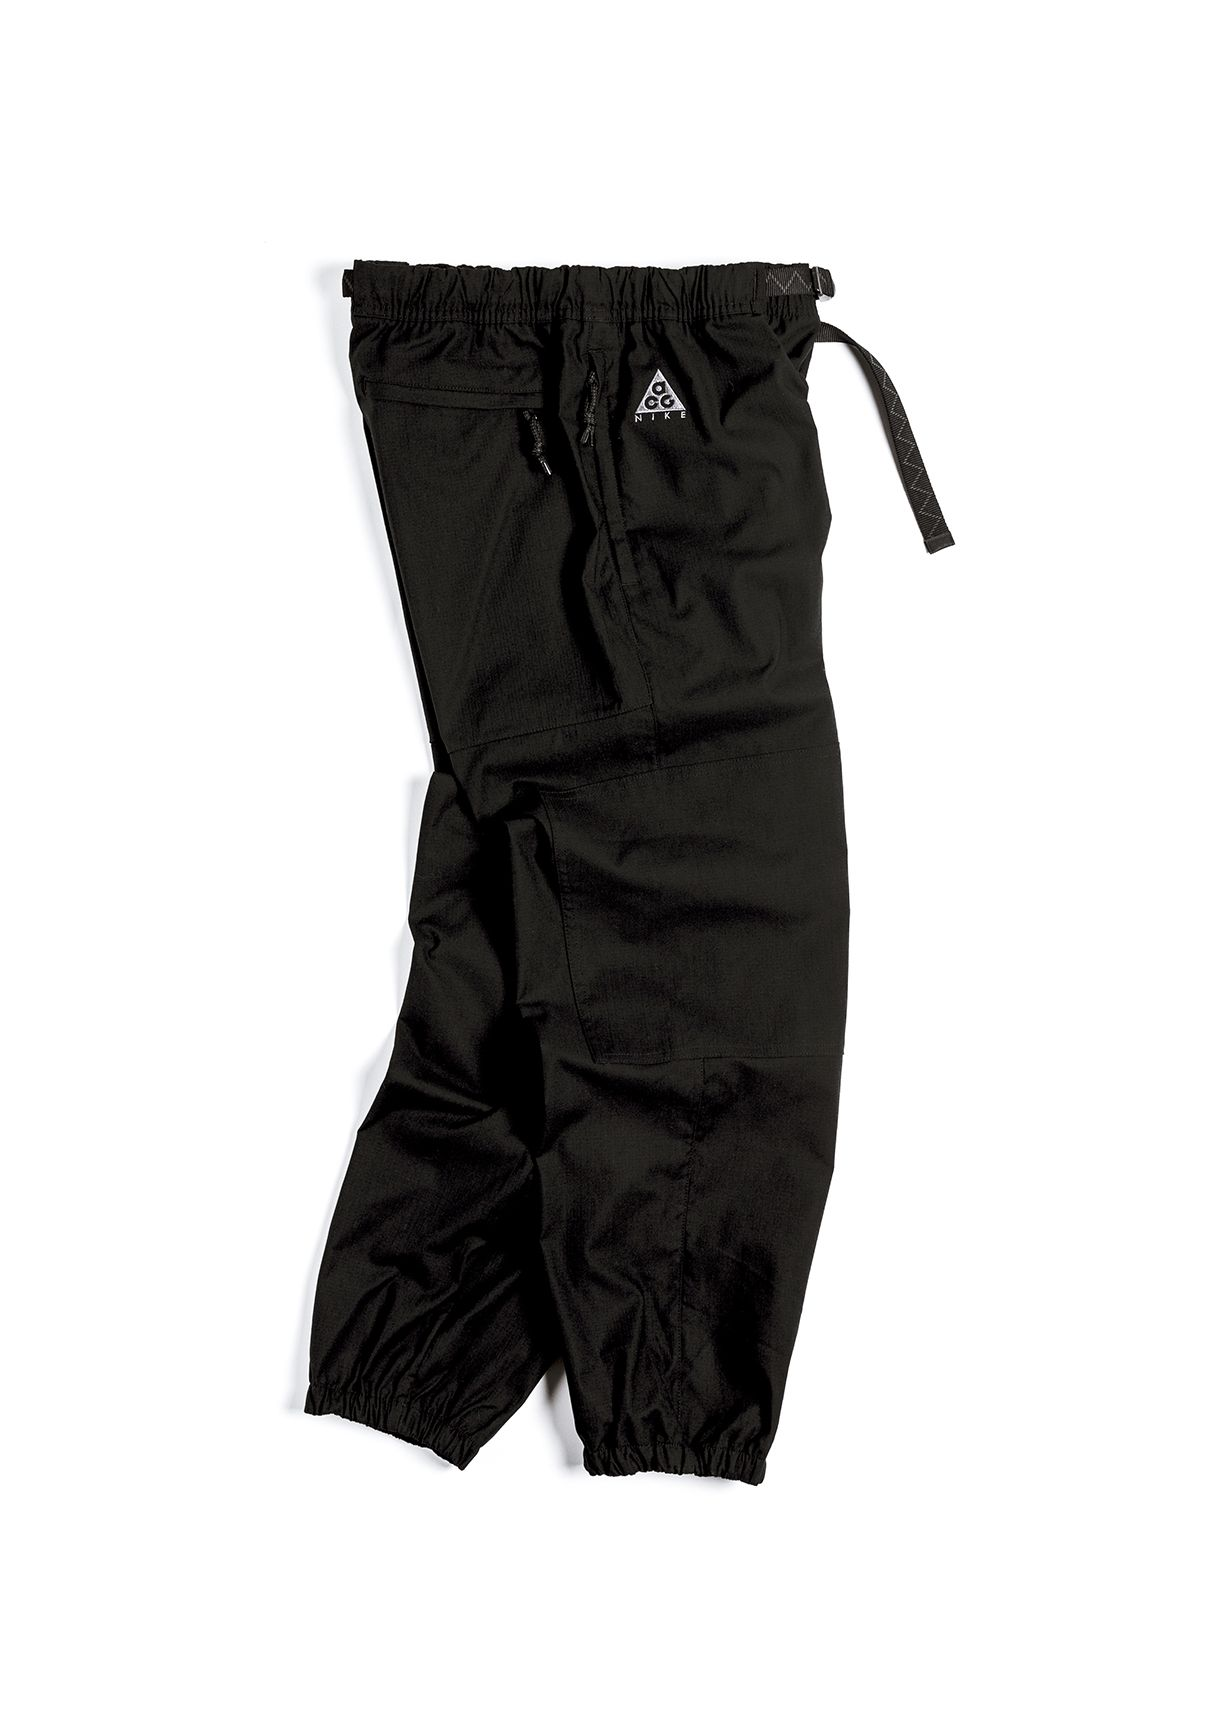 Dinkarville Libro Eh  Nike Womens ACG Trail Pant | Tech clothing, Trending sneakers, Nike acg